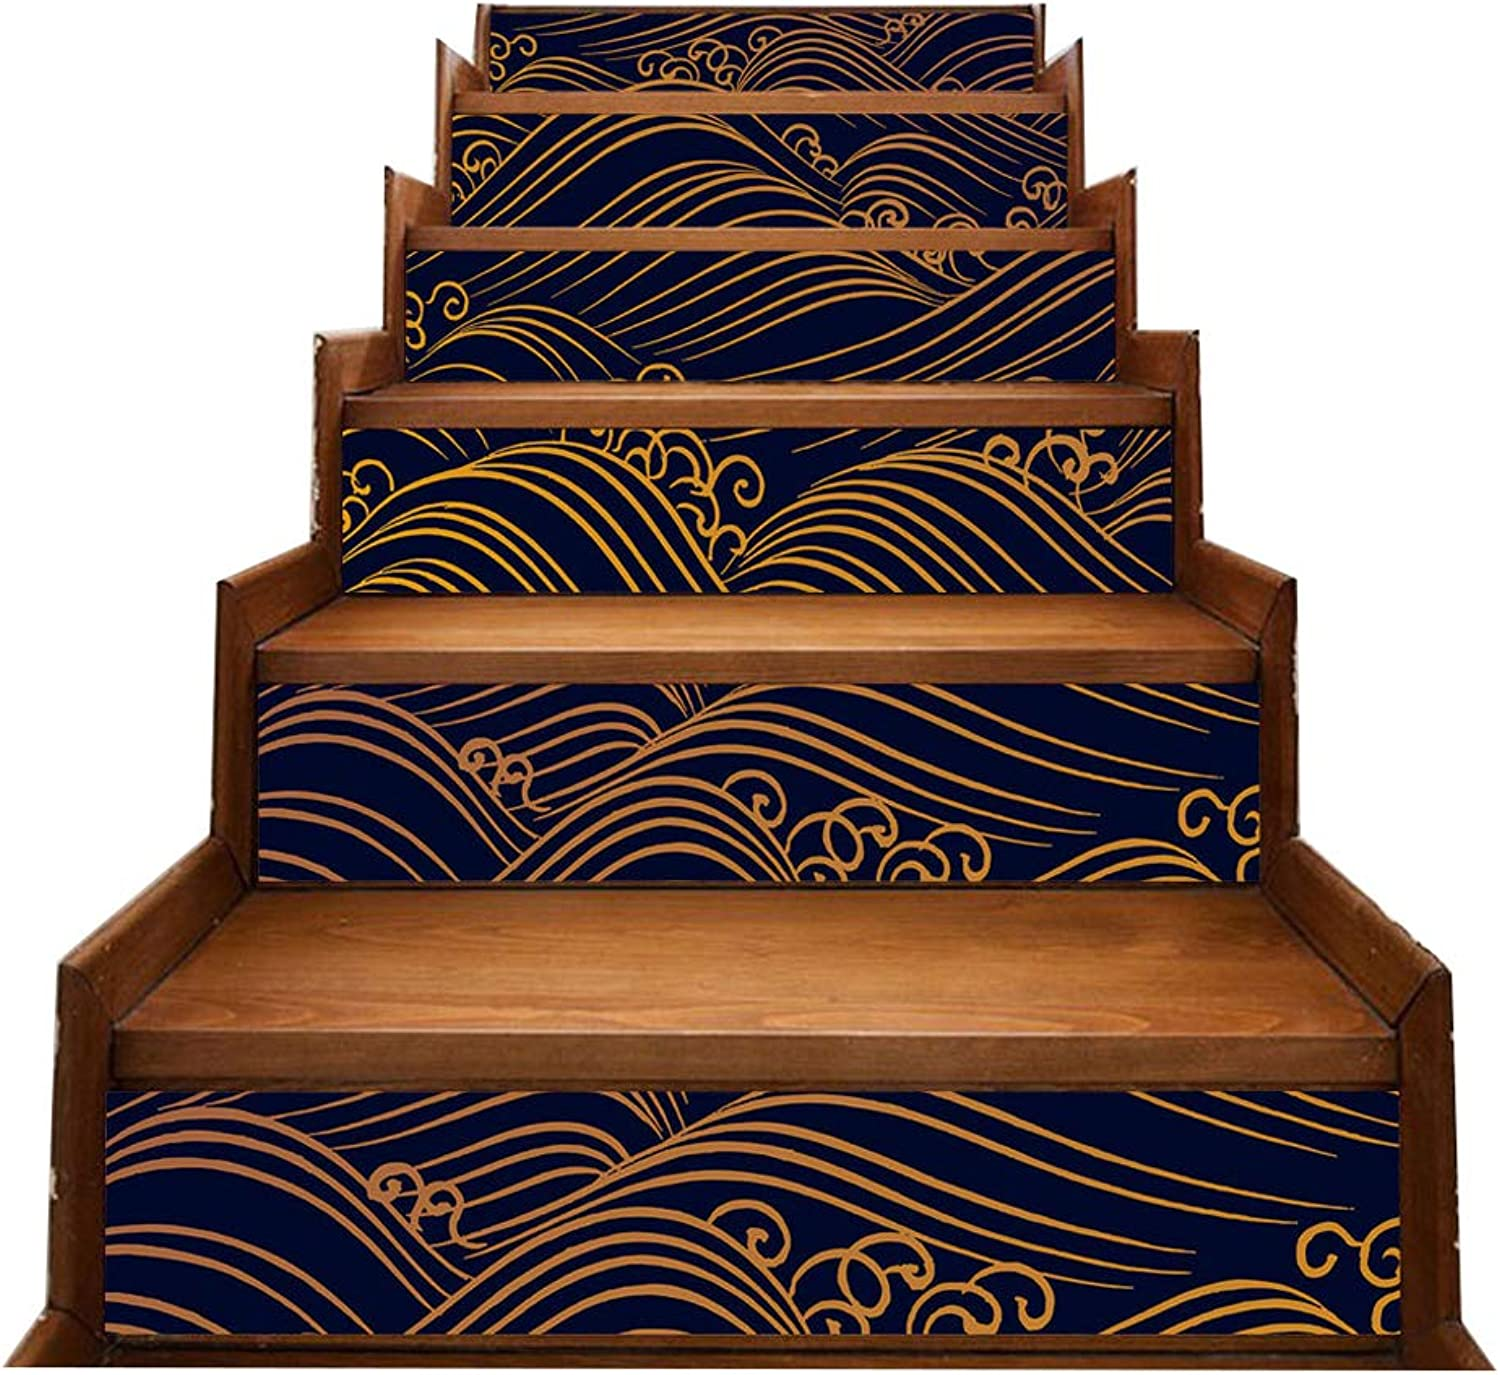 3D Stairs Stickers Originality Wave DIY Self-Adhesive Stairs Decals Removable Waterproof Refurbished Stair Sticker Home Decor (18  100Cm) 1Set 6PCS,6(Pieces)